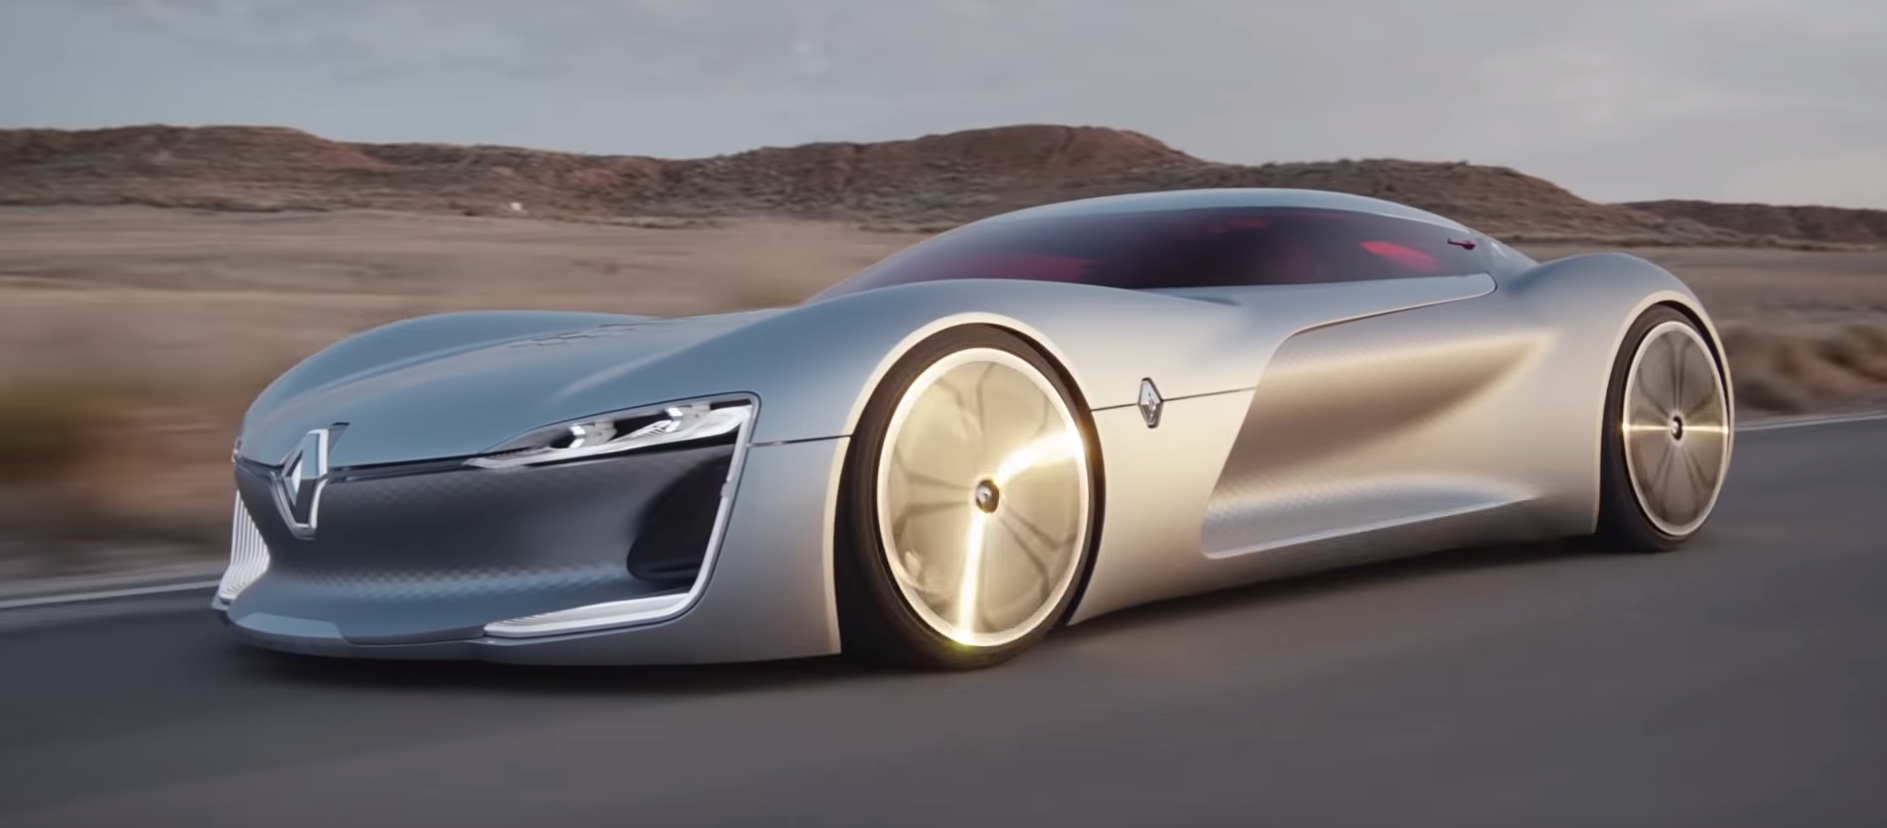 Why Car Companies Spend Millions On Concept Cars They'll Never Release